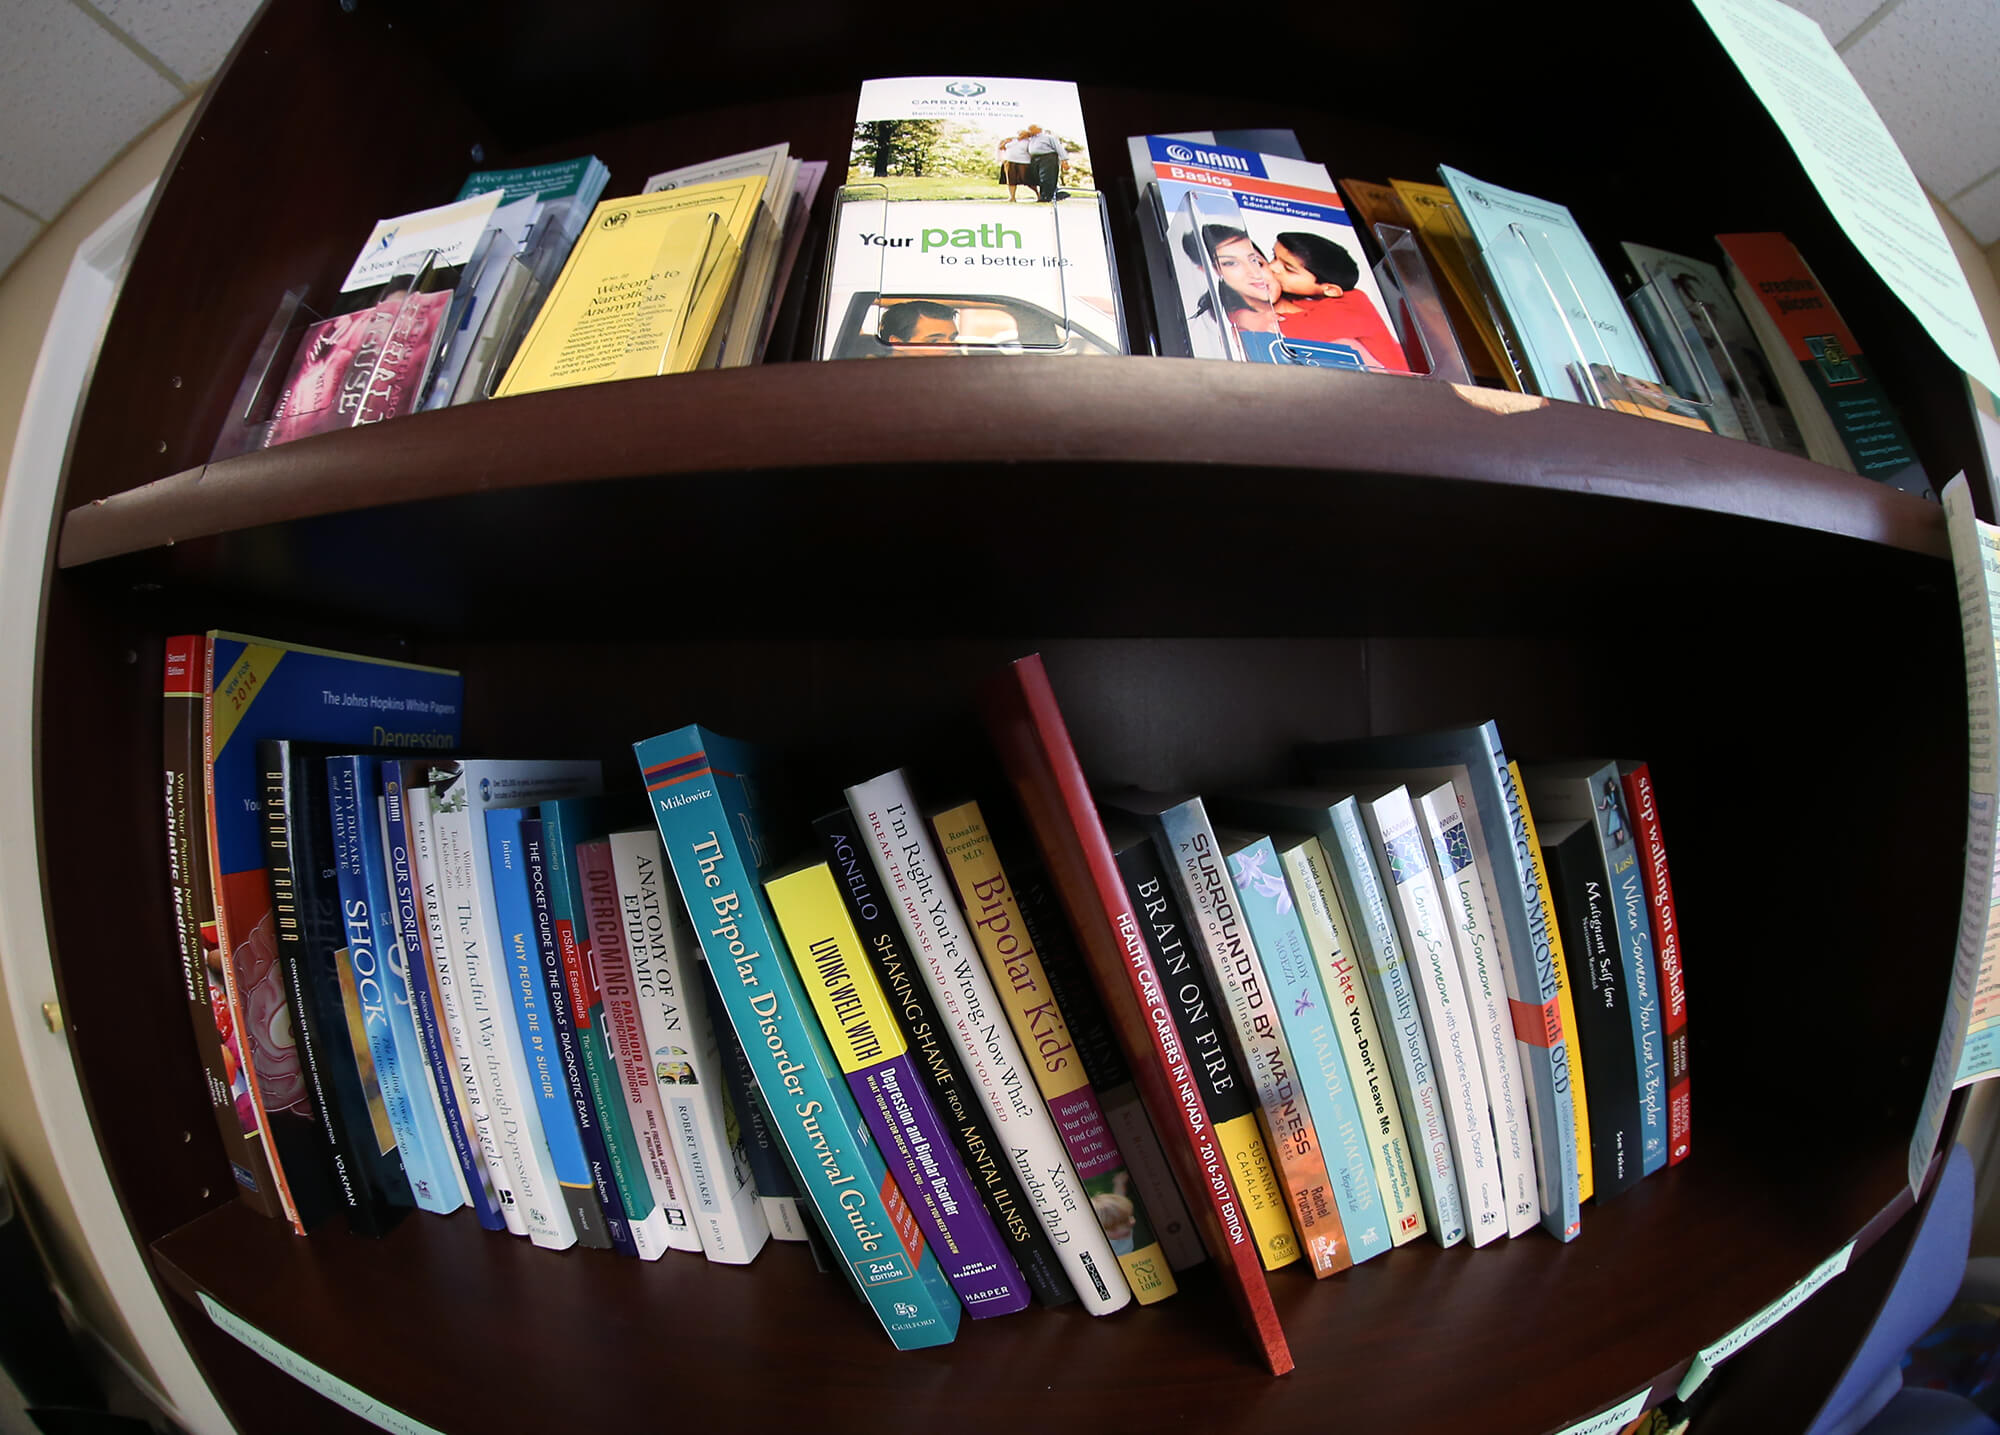 A fish-eye view of colorful books and brochures on a dark brown, wood bookshelf.